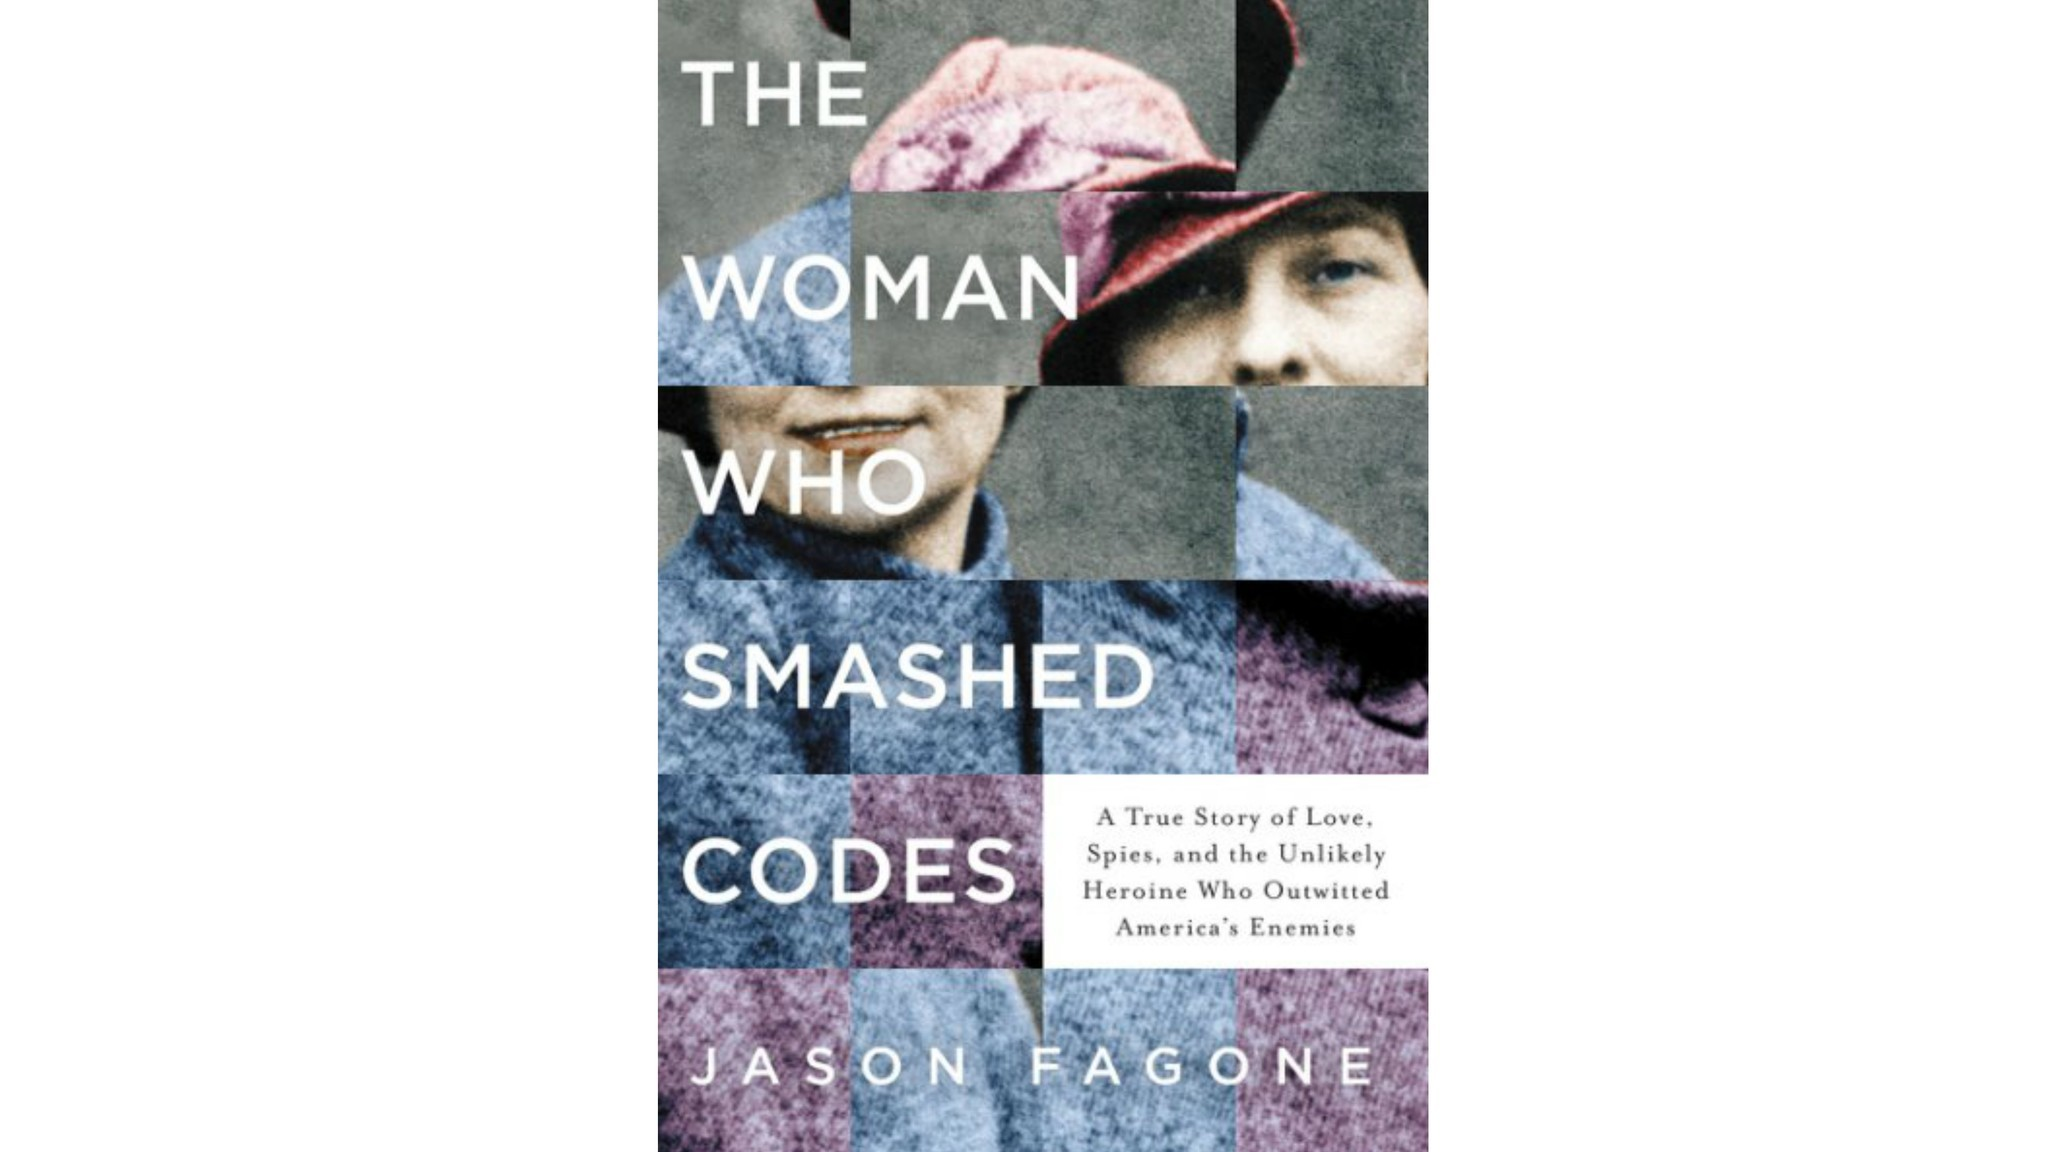 """The Woman Who Smashed Codes A True Story of Love, Spies, and the Unlikely Heroine Who Outwitted America's Enemies"" by Jason Fagone."